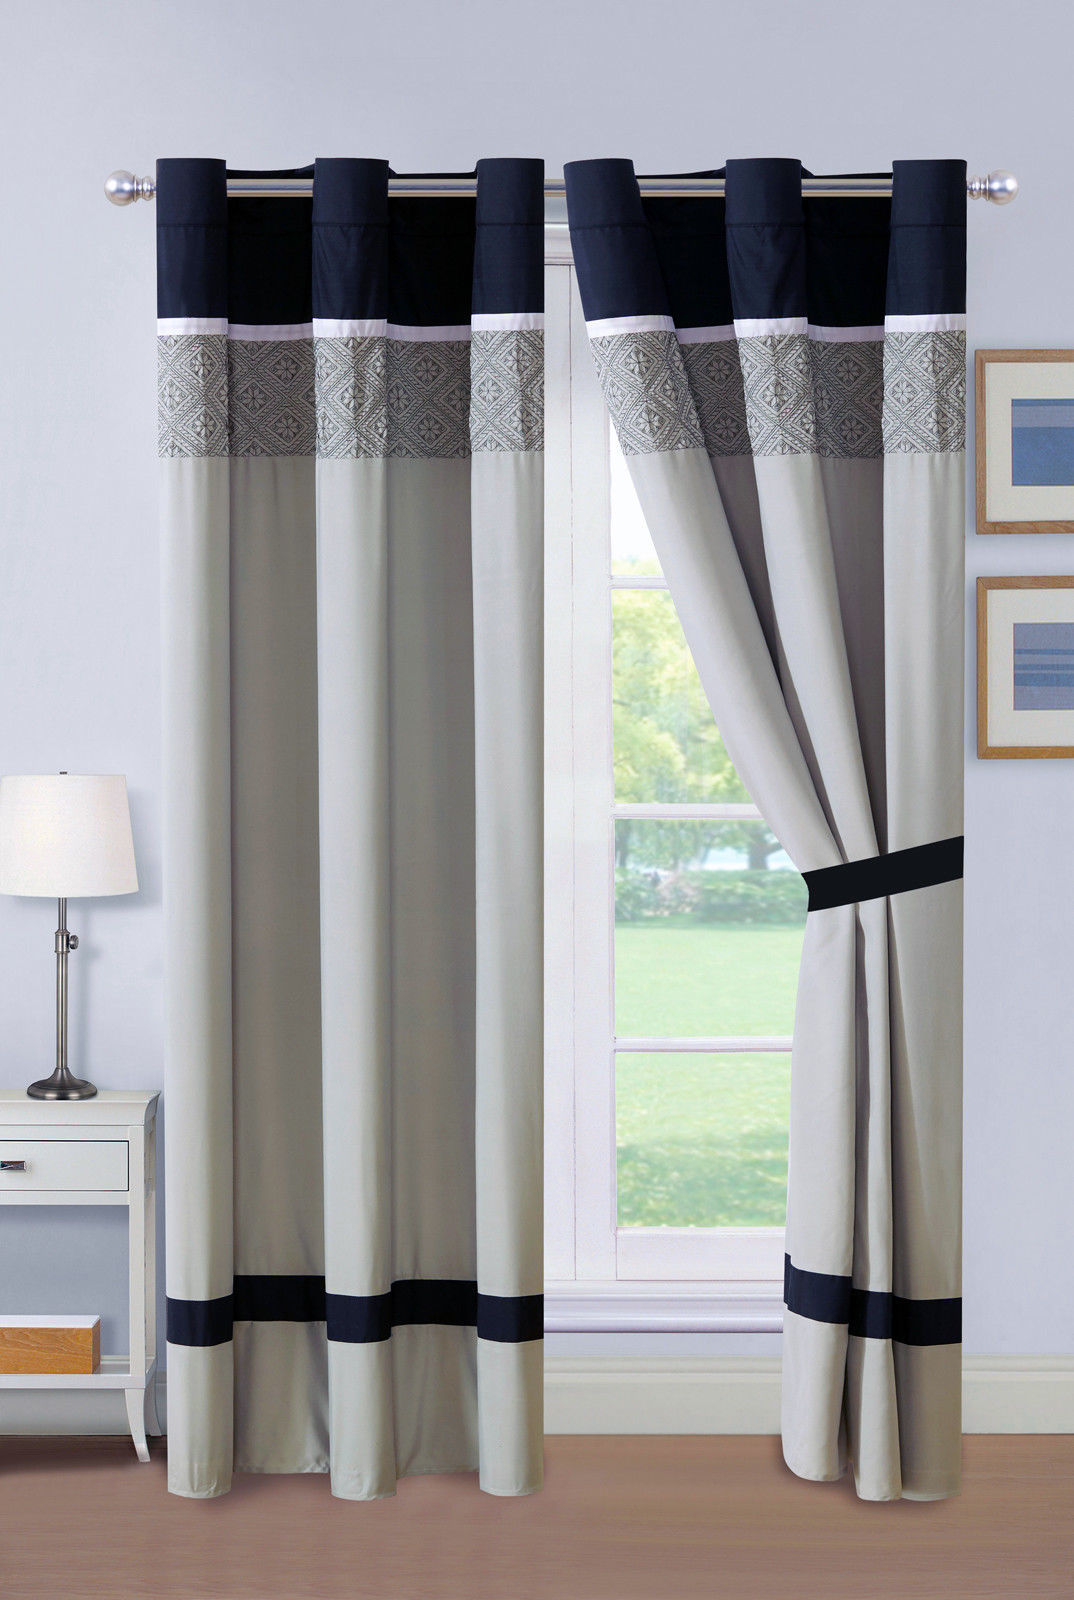 Primary image for 4-Pc Darius Octagram Star Floral Embroidery Curtain Set Black Gray White Sheer